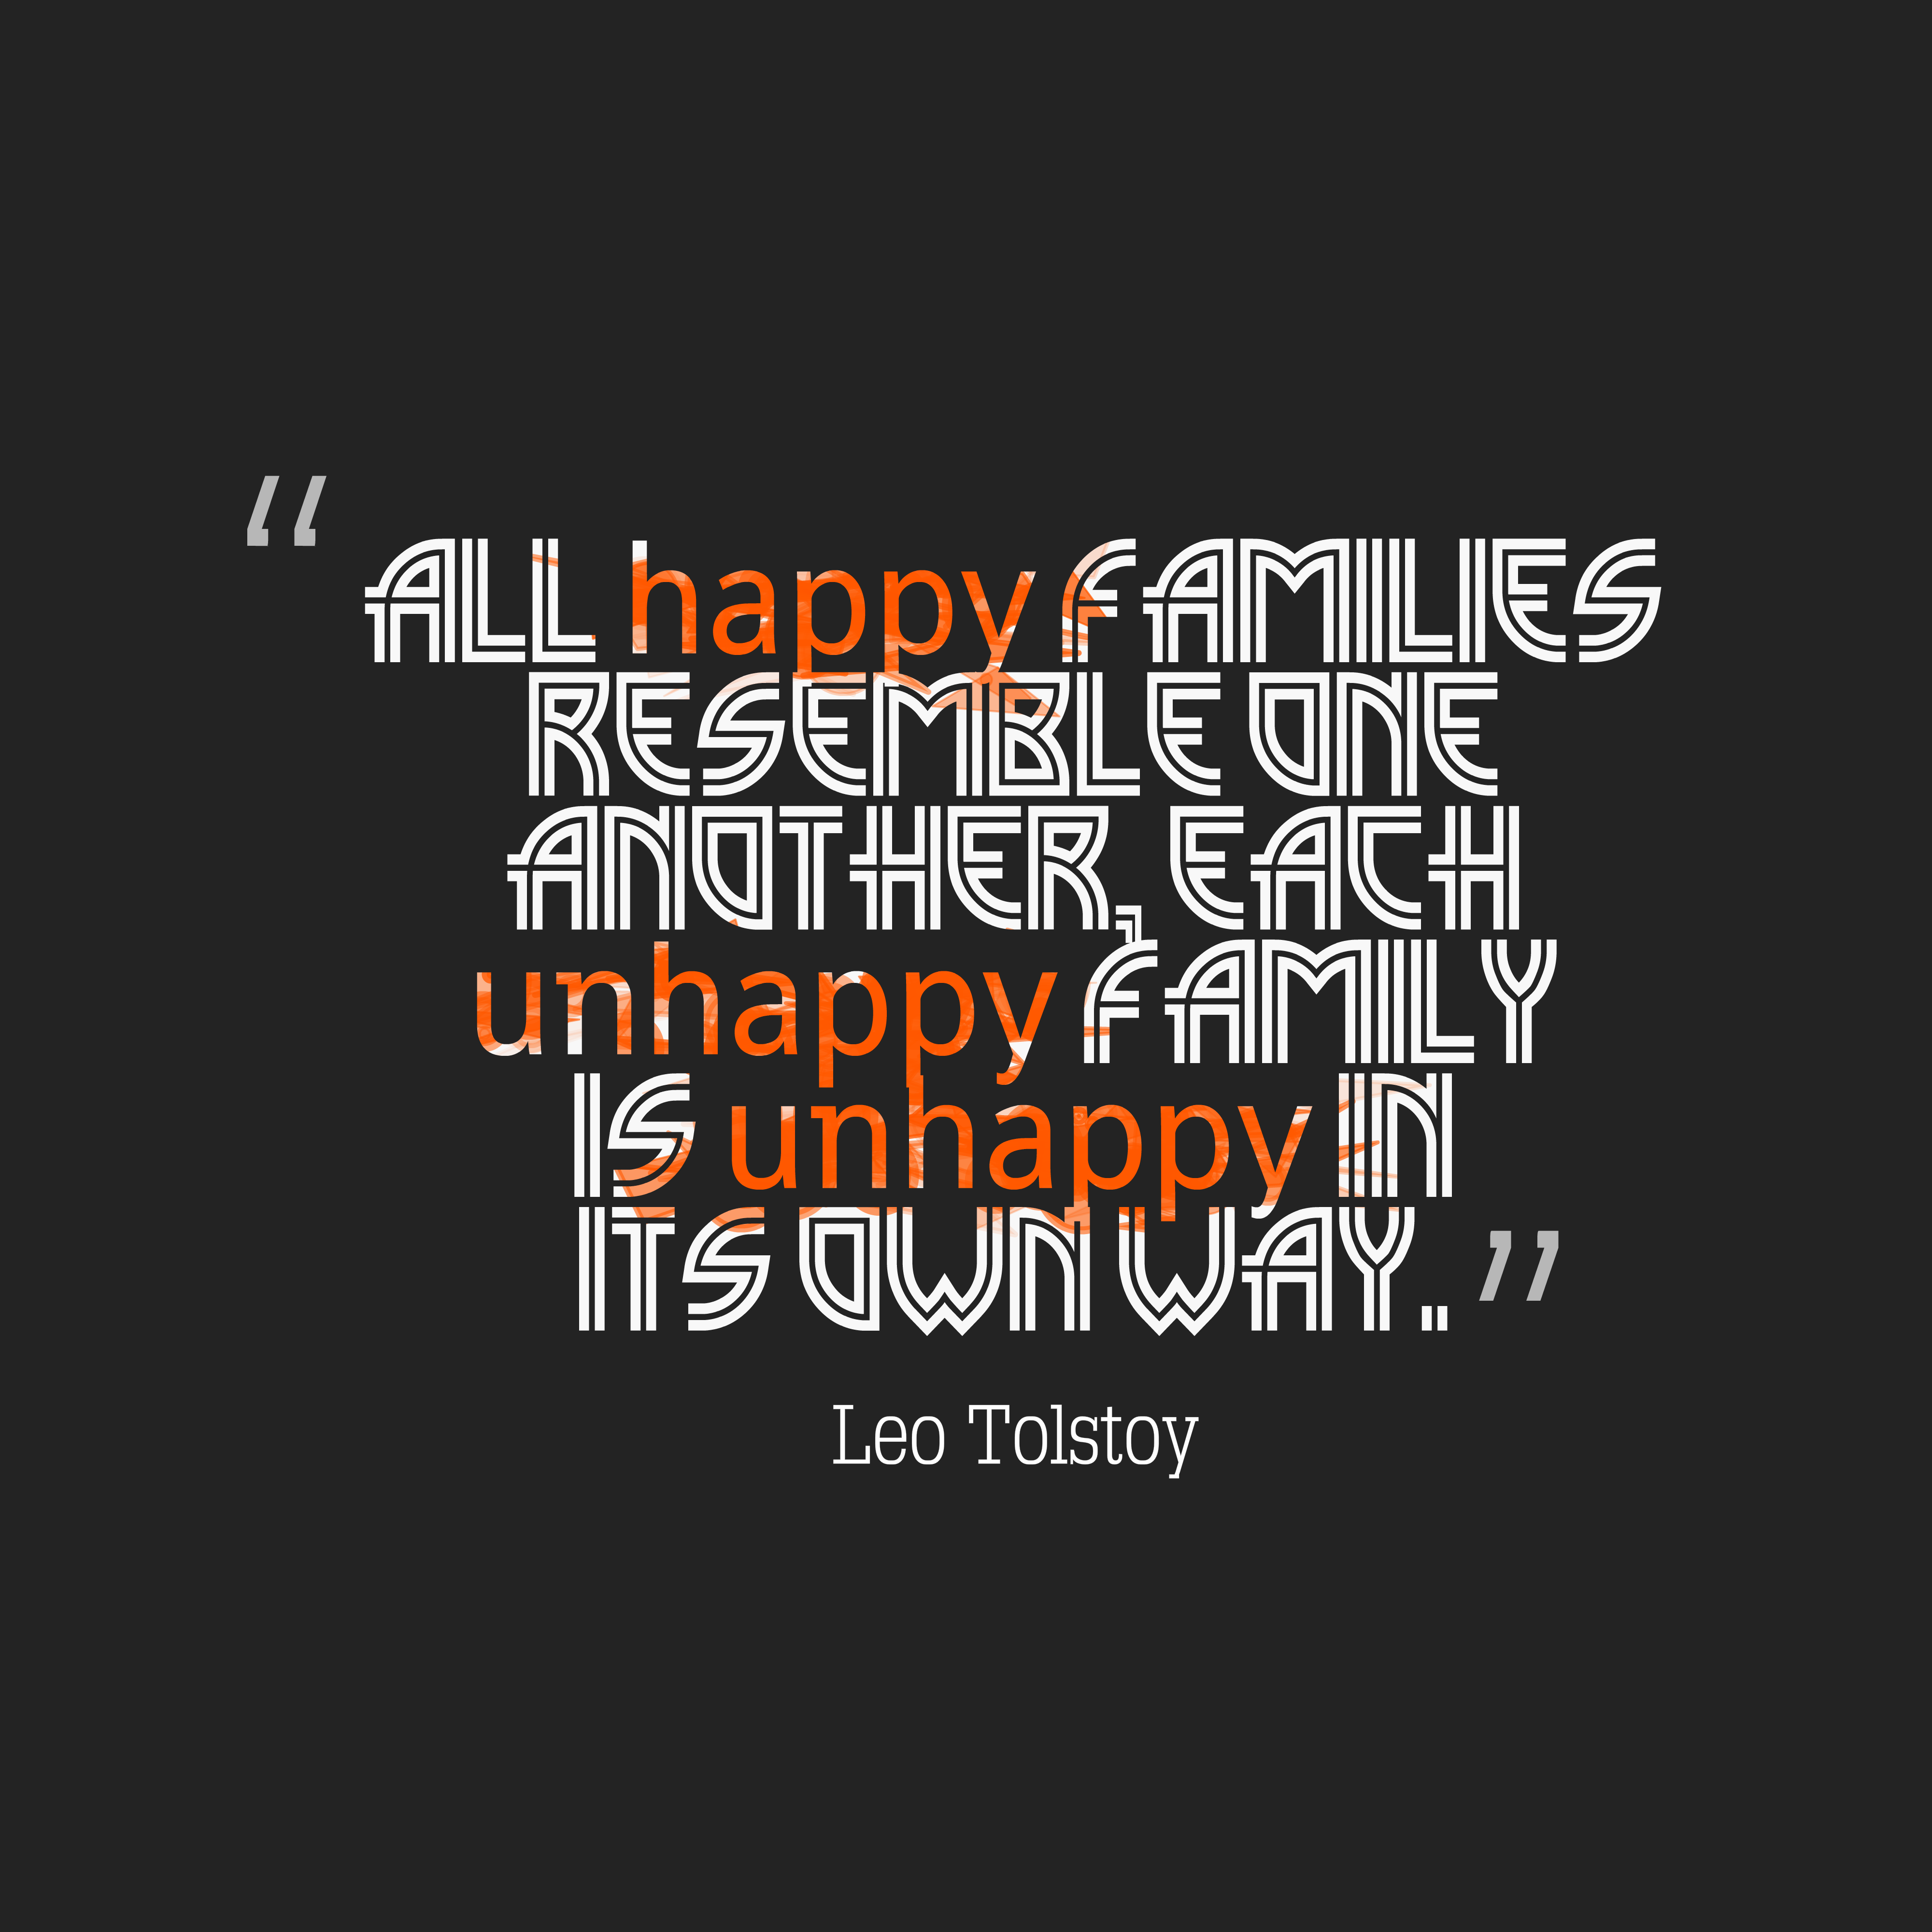 Leo Tolstoy Quote About Family